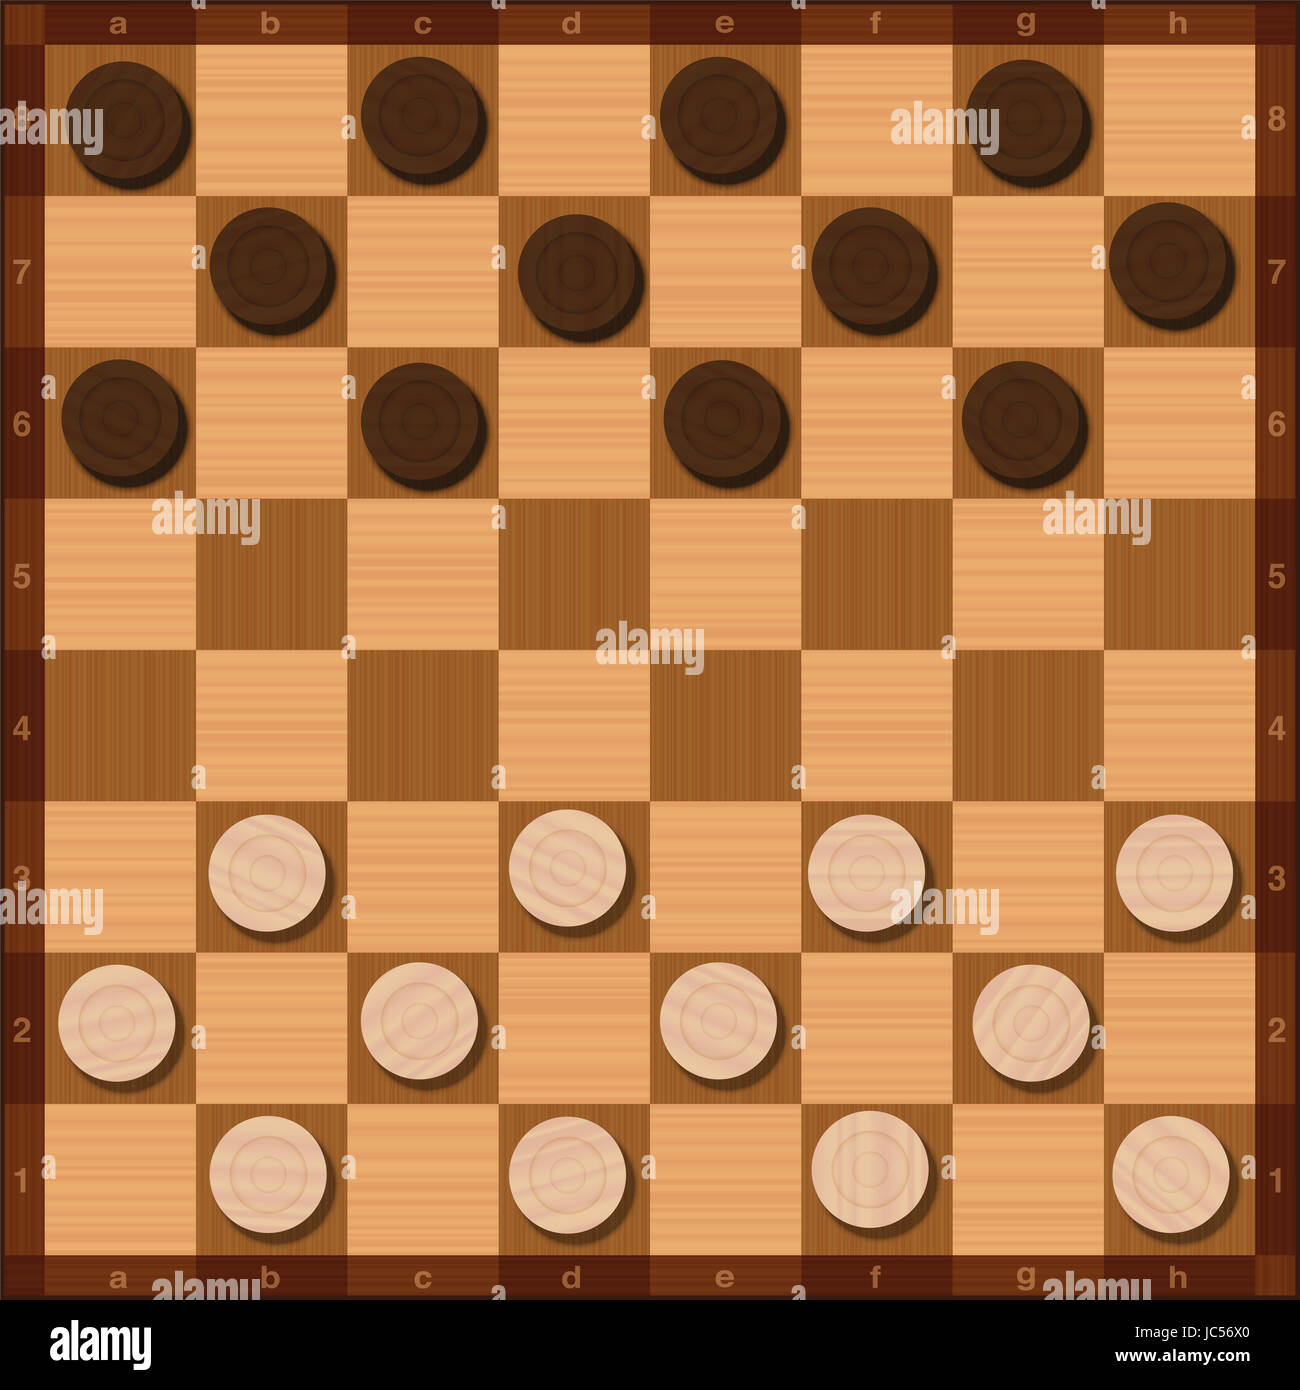 Draughts game, starting position of the twenty-four tokens, top view, wood grain style. - Stock Image